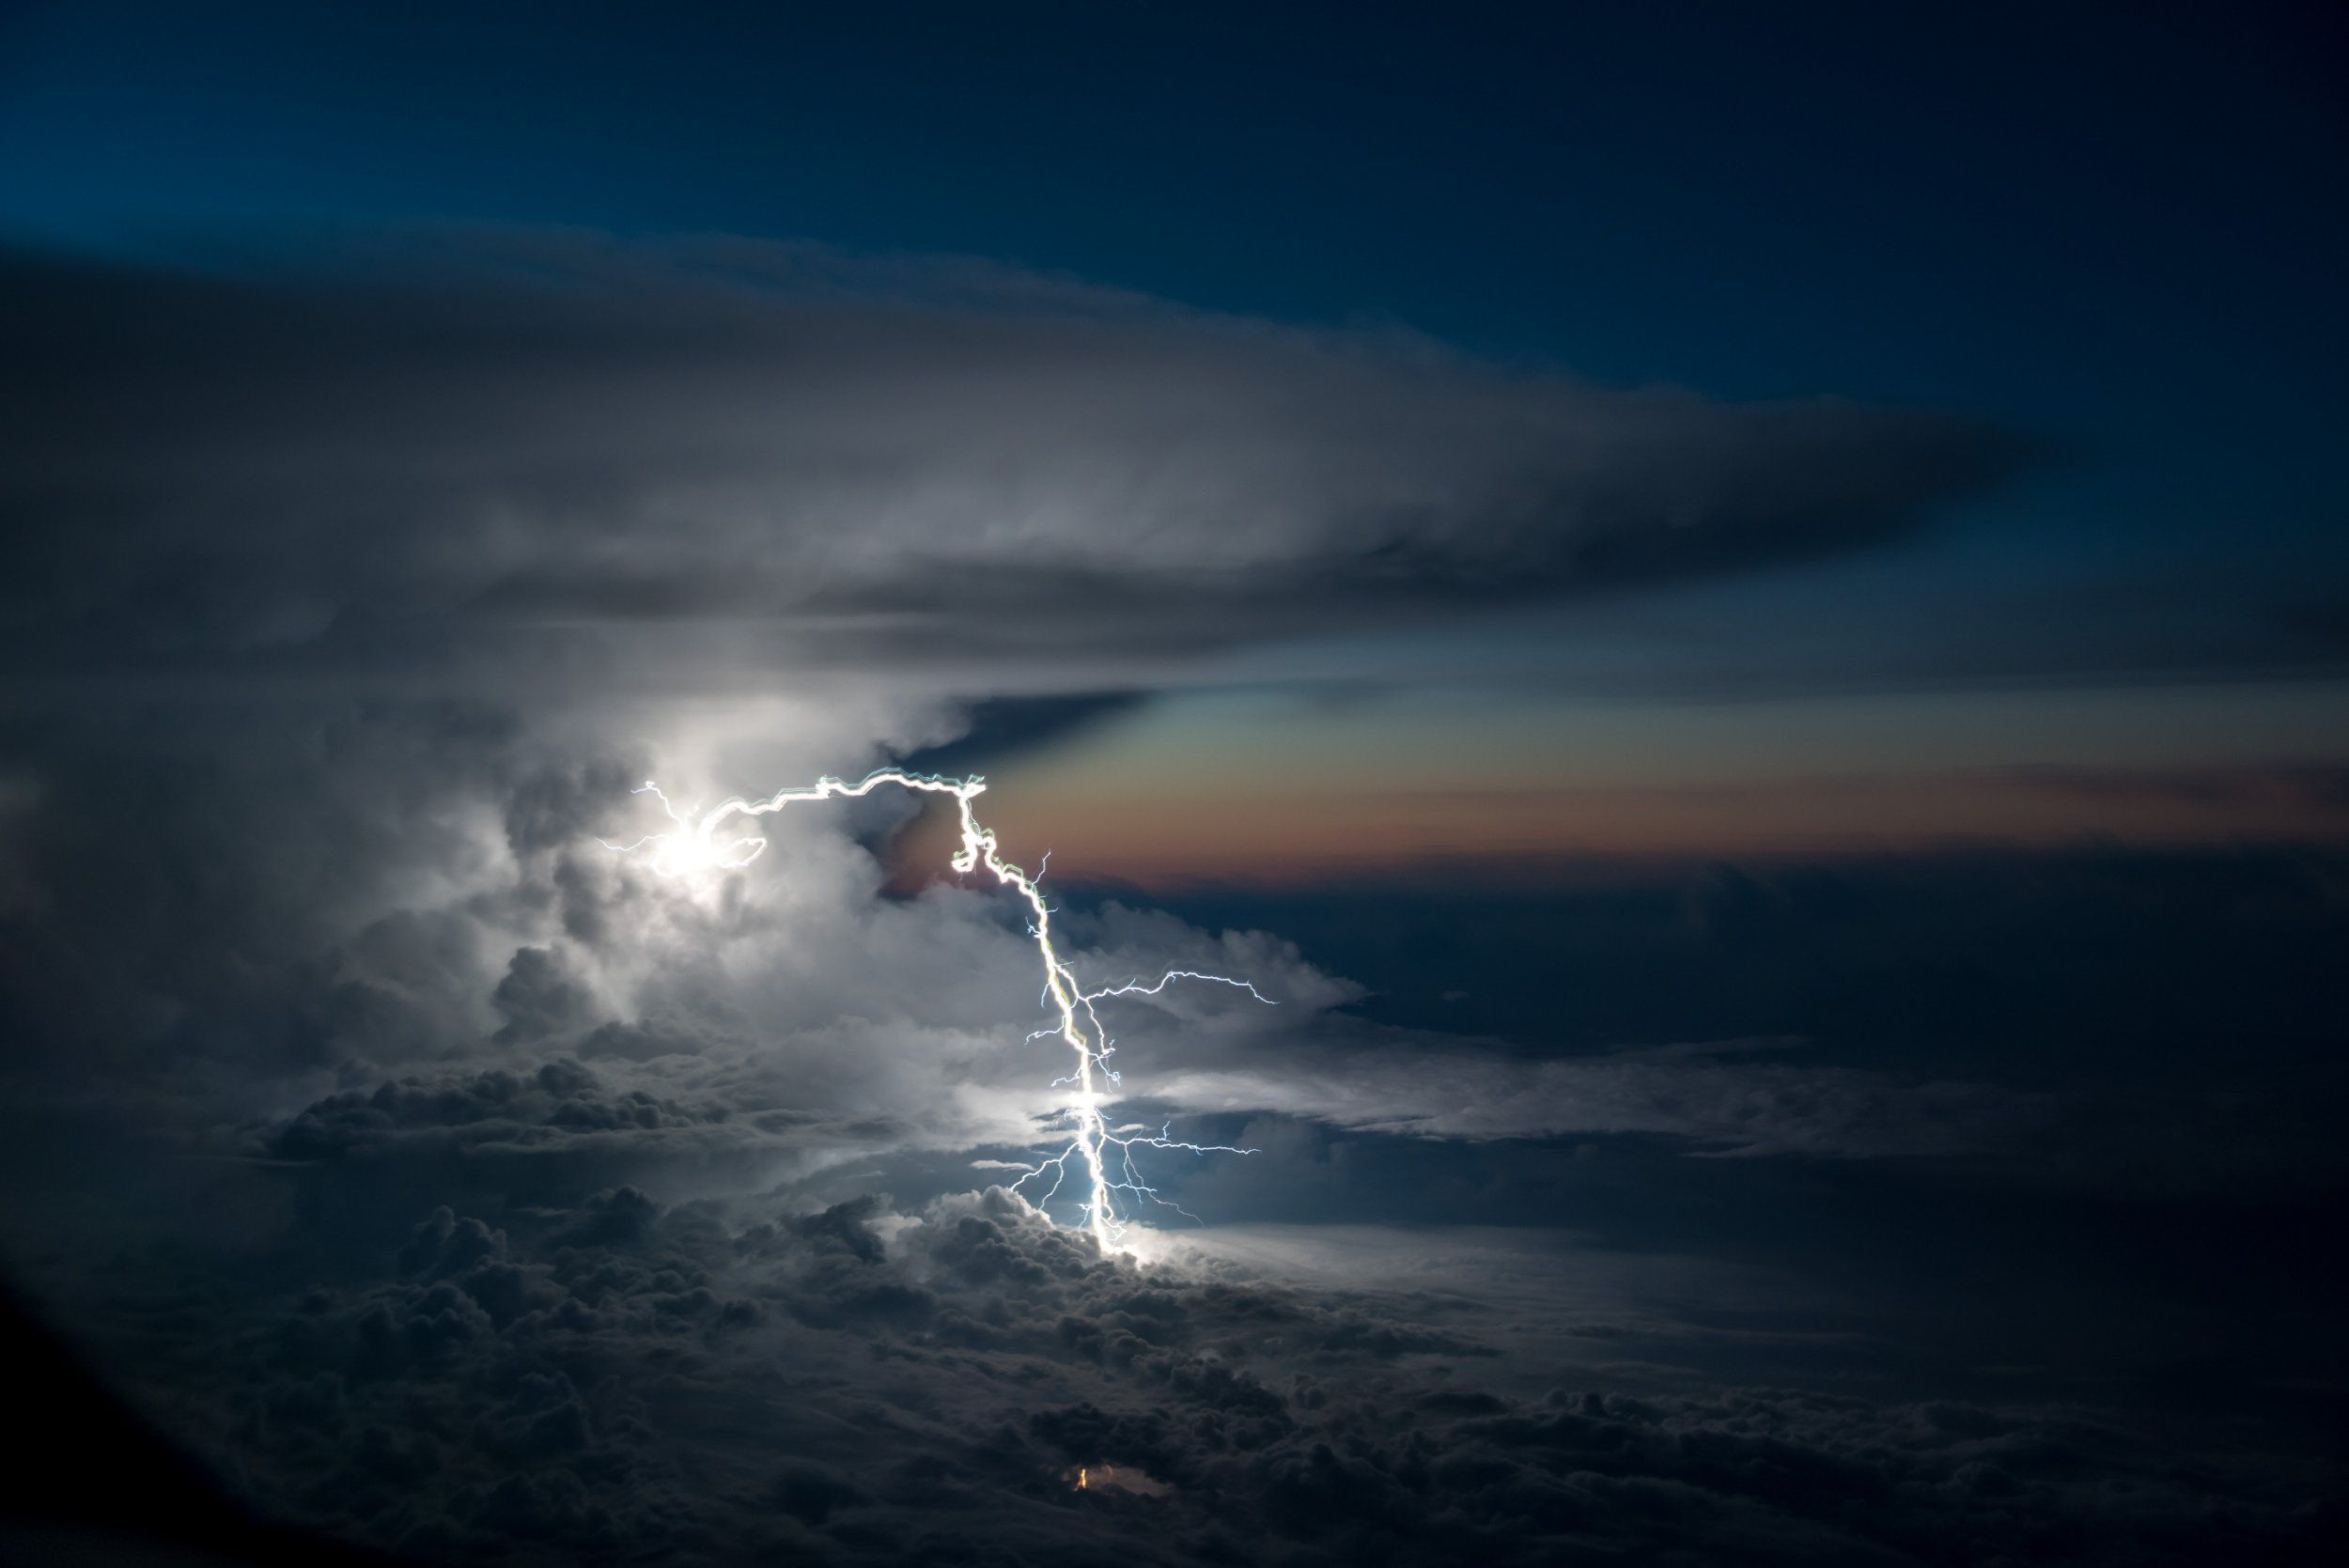 What happens if lightning strikes the airplane? Part 2